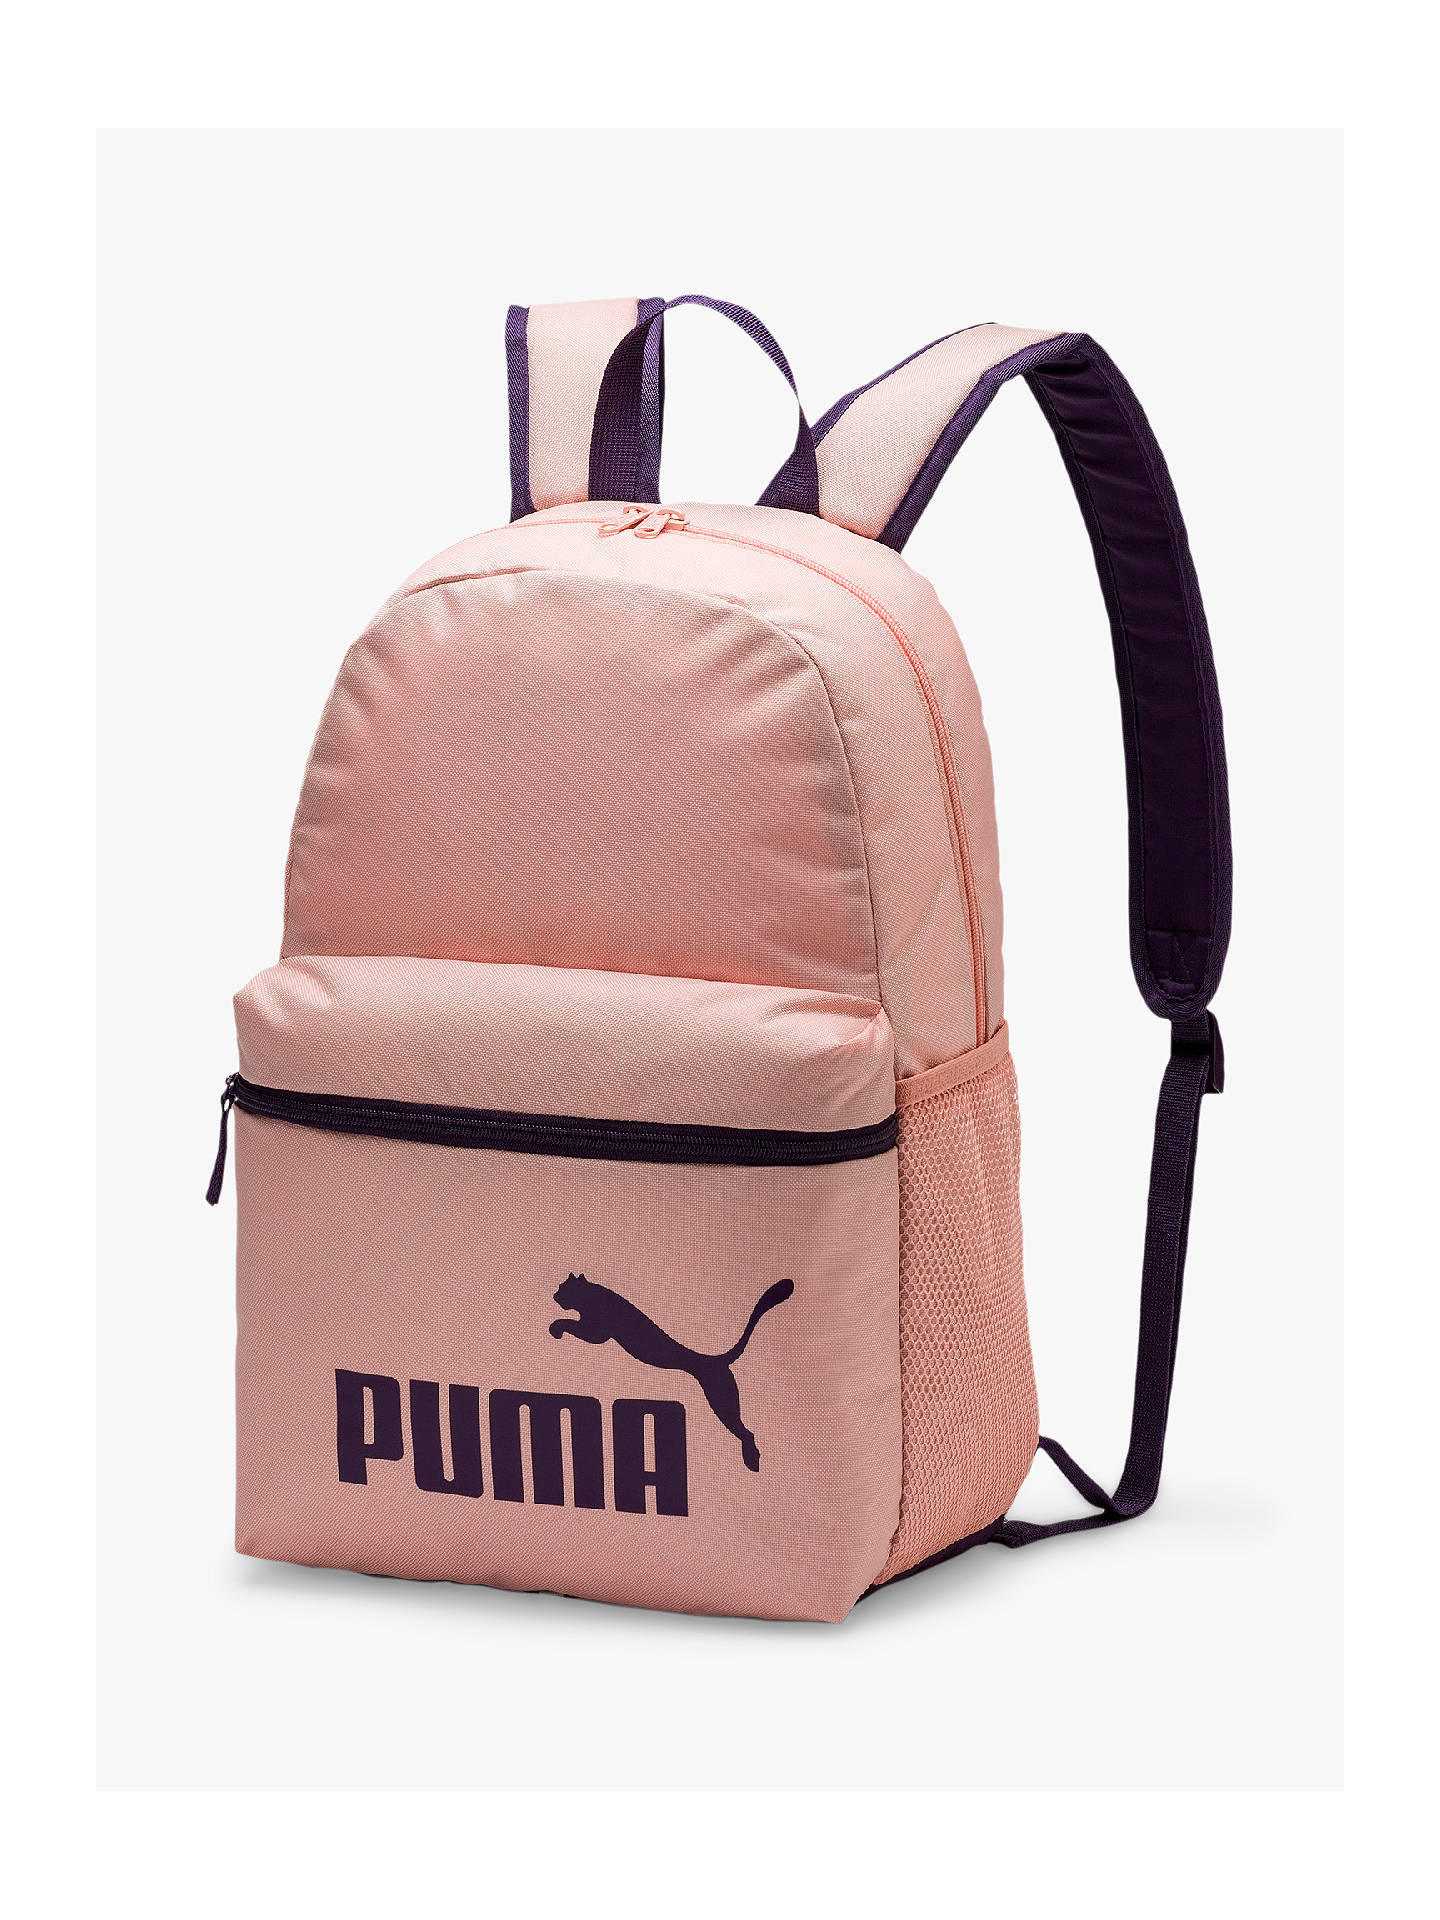 458e57b0f4 PUMA Children s Phase Backpack at John Lewis   Partners